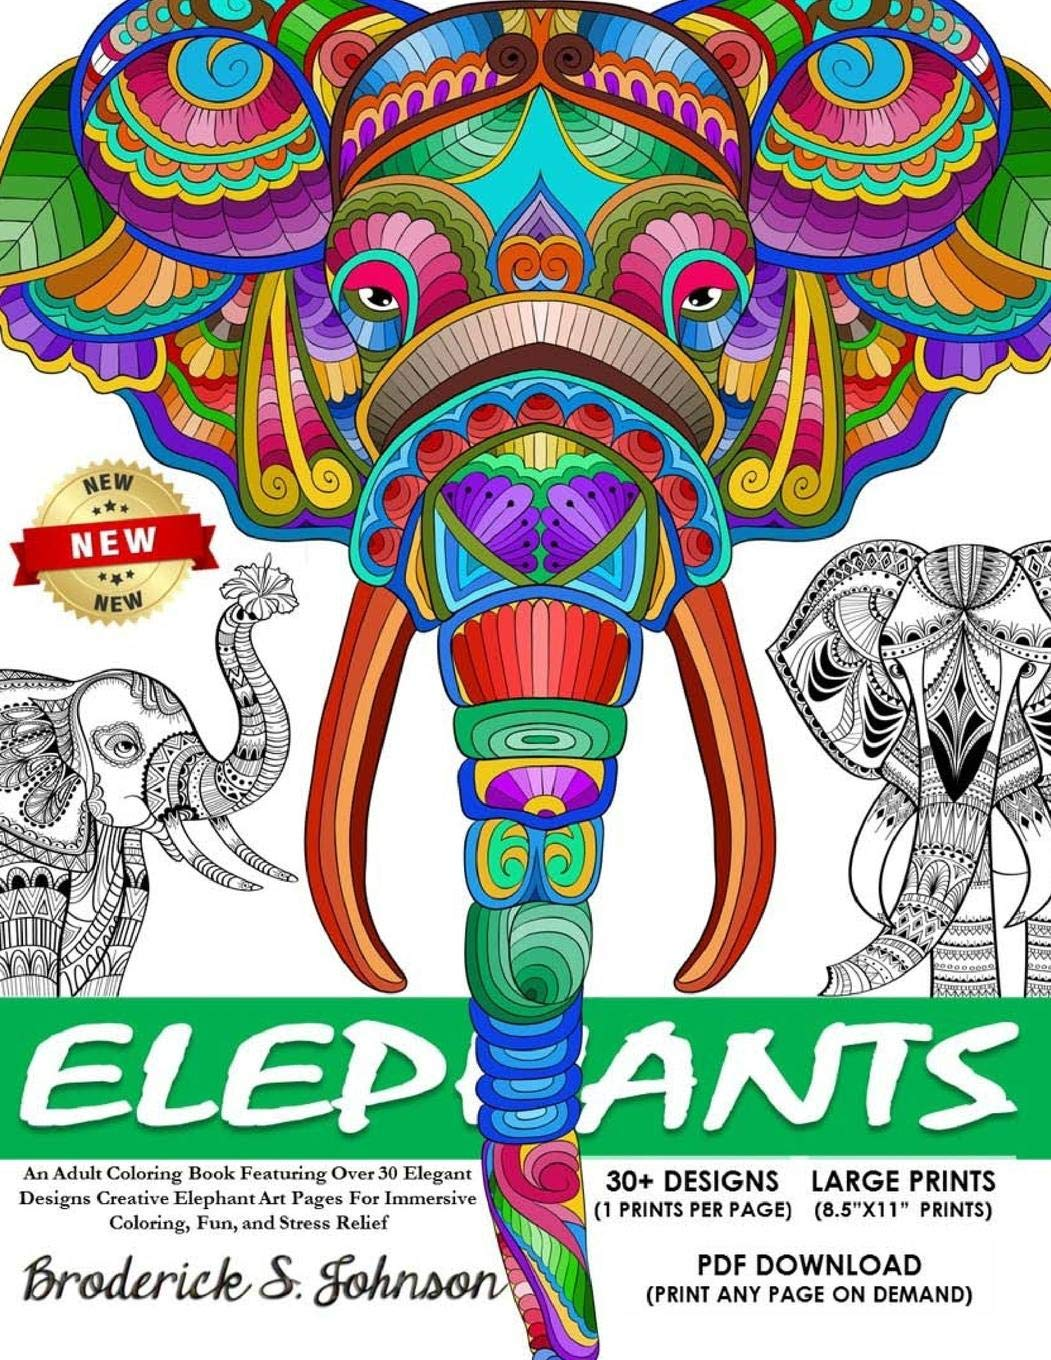 - Amazon.com: Elephants: An Adult Coloring Book Featuring Over 30